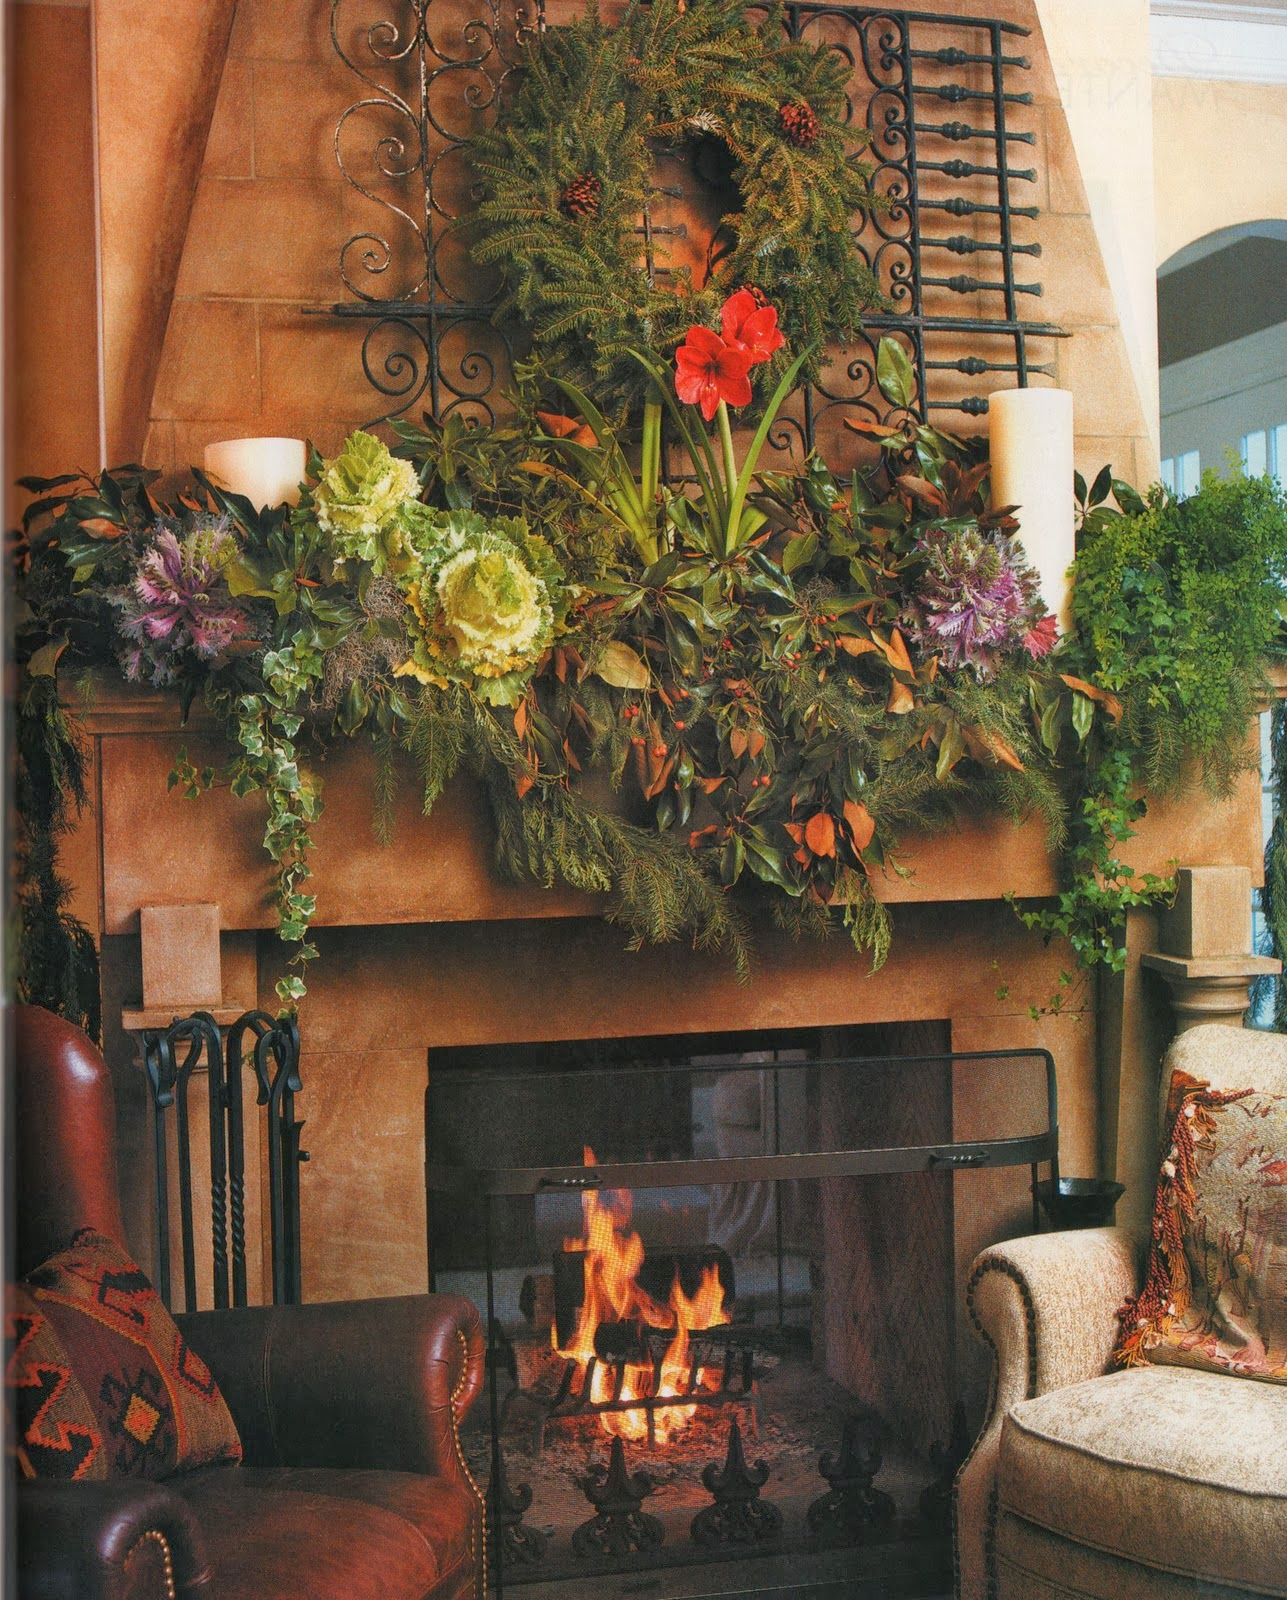 Shabby in love: Inspiring Christmas Fireplace Mantel